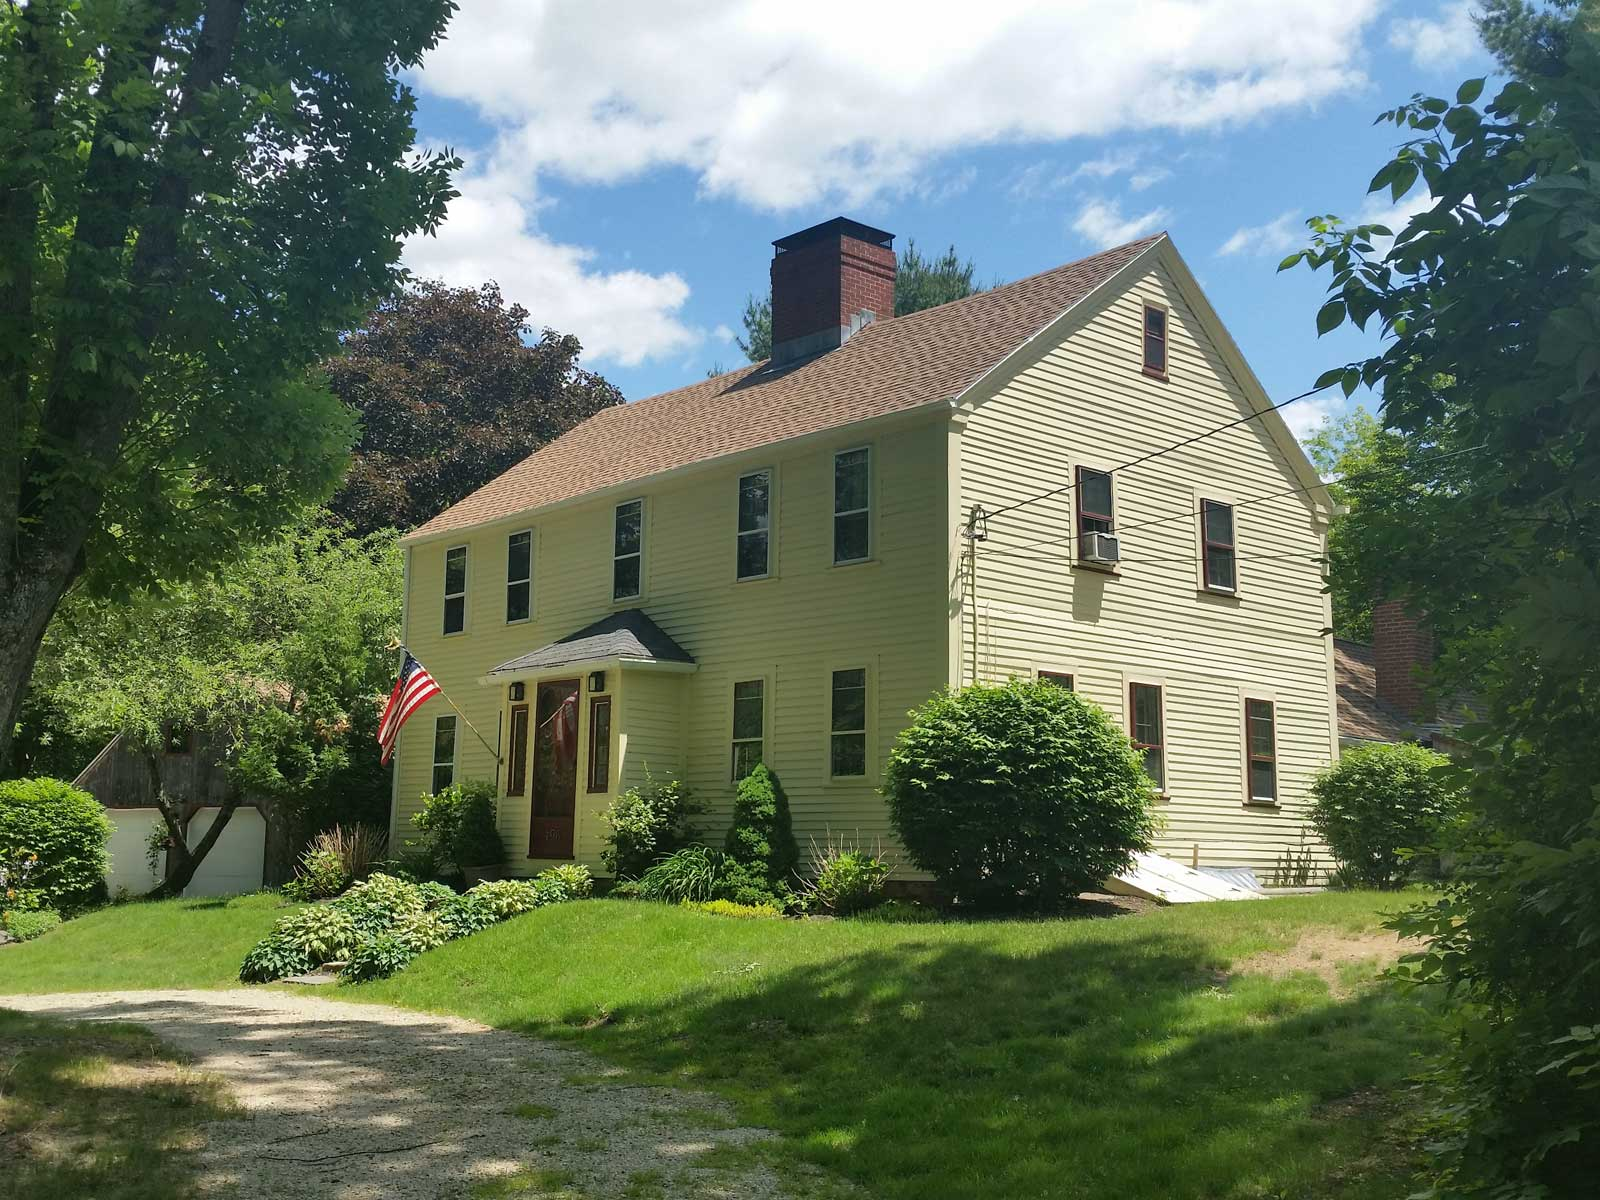 Single Family Home for Sale at Stately Colonial in Eliot 196 Fore Road Eliot, Maine 03903 United States